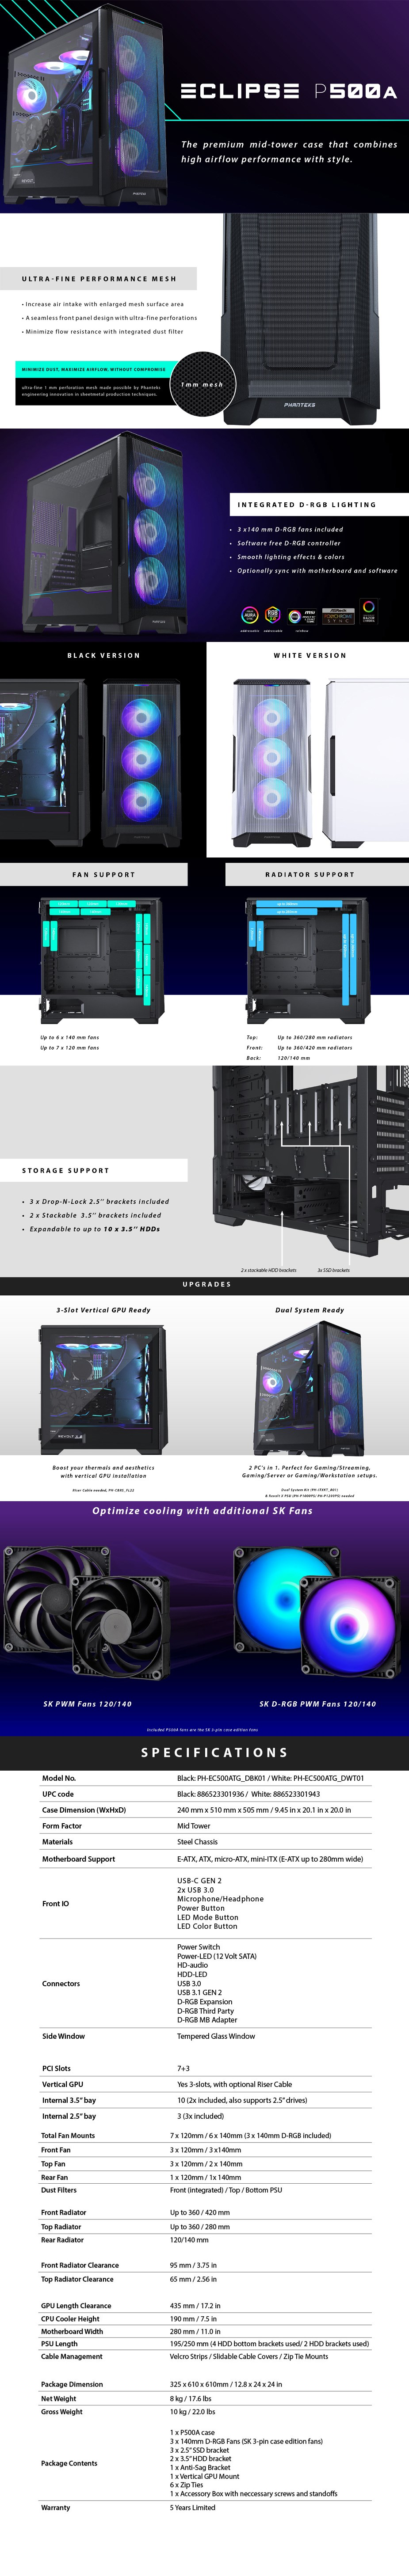 Phanteks Eclipse P500A Airflow D-RGB Tempered Glass Mid-Tower ATX Case - White - Overview 1